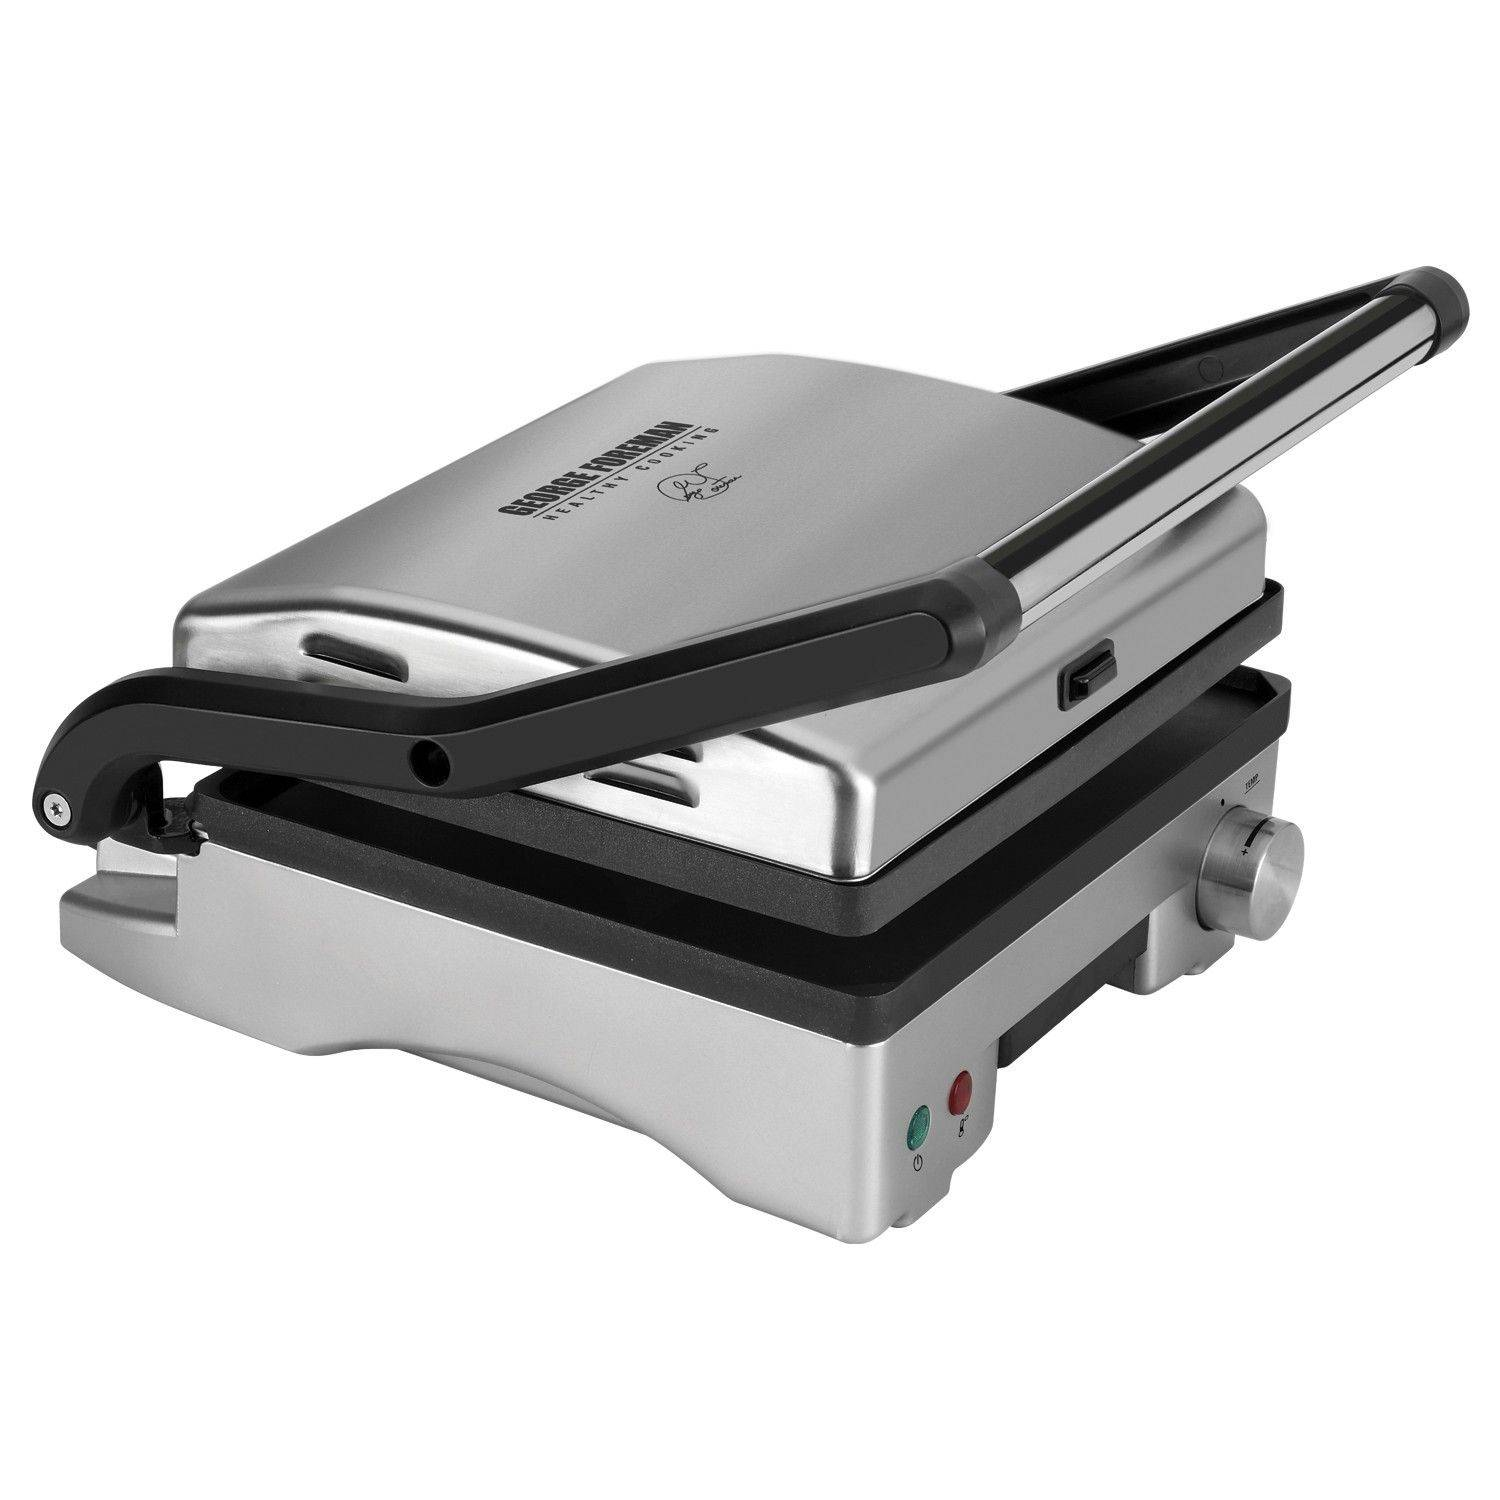 Panini press makes dinner fast